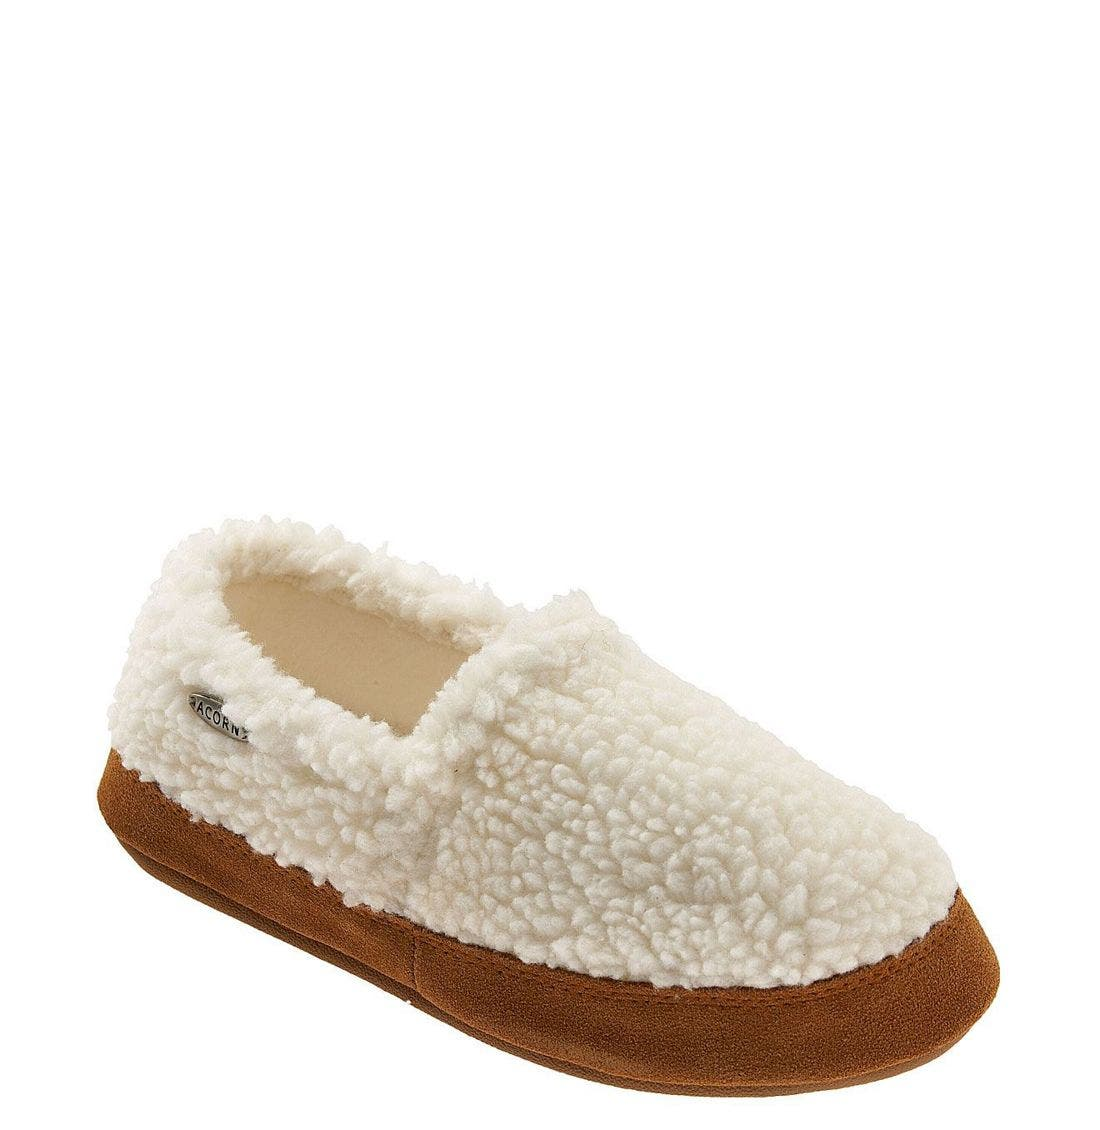 Main Image - Acorn 'Tex' Slipper